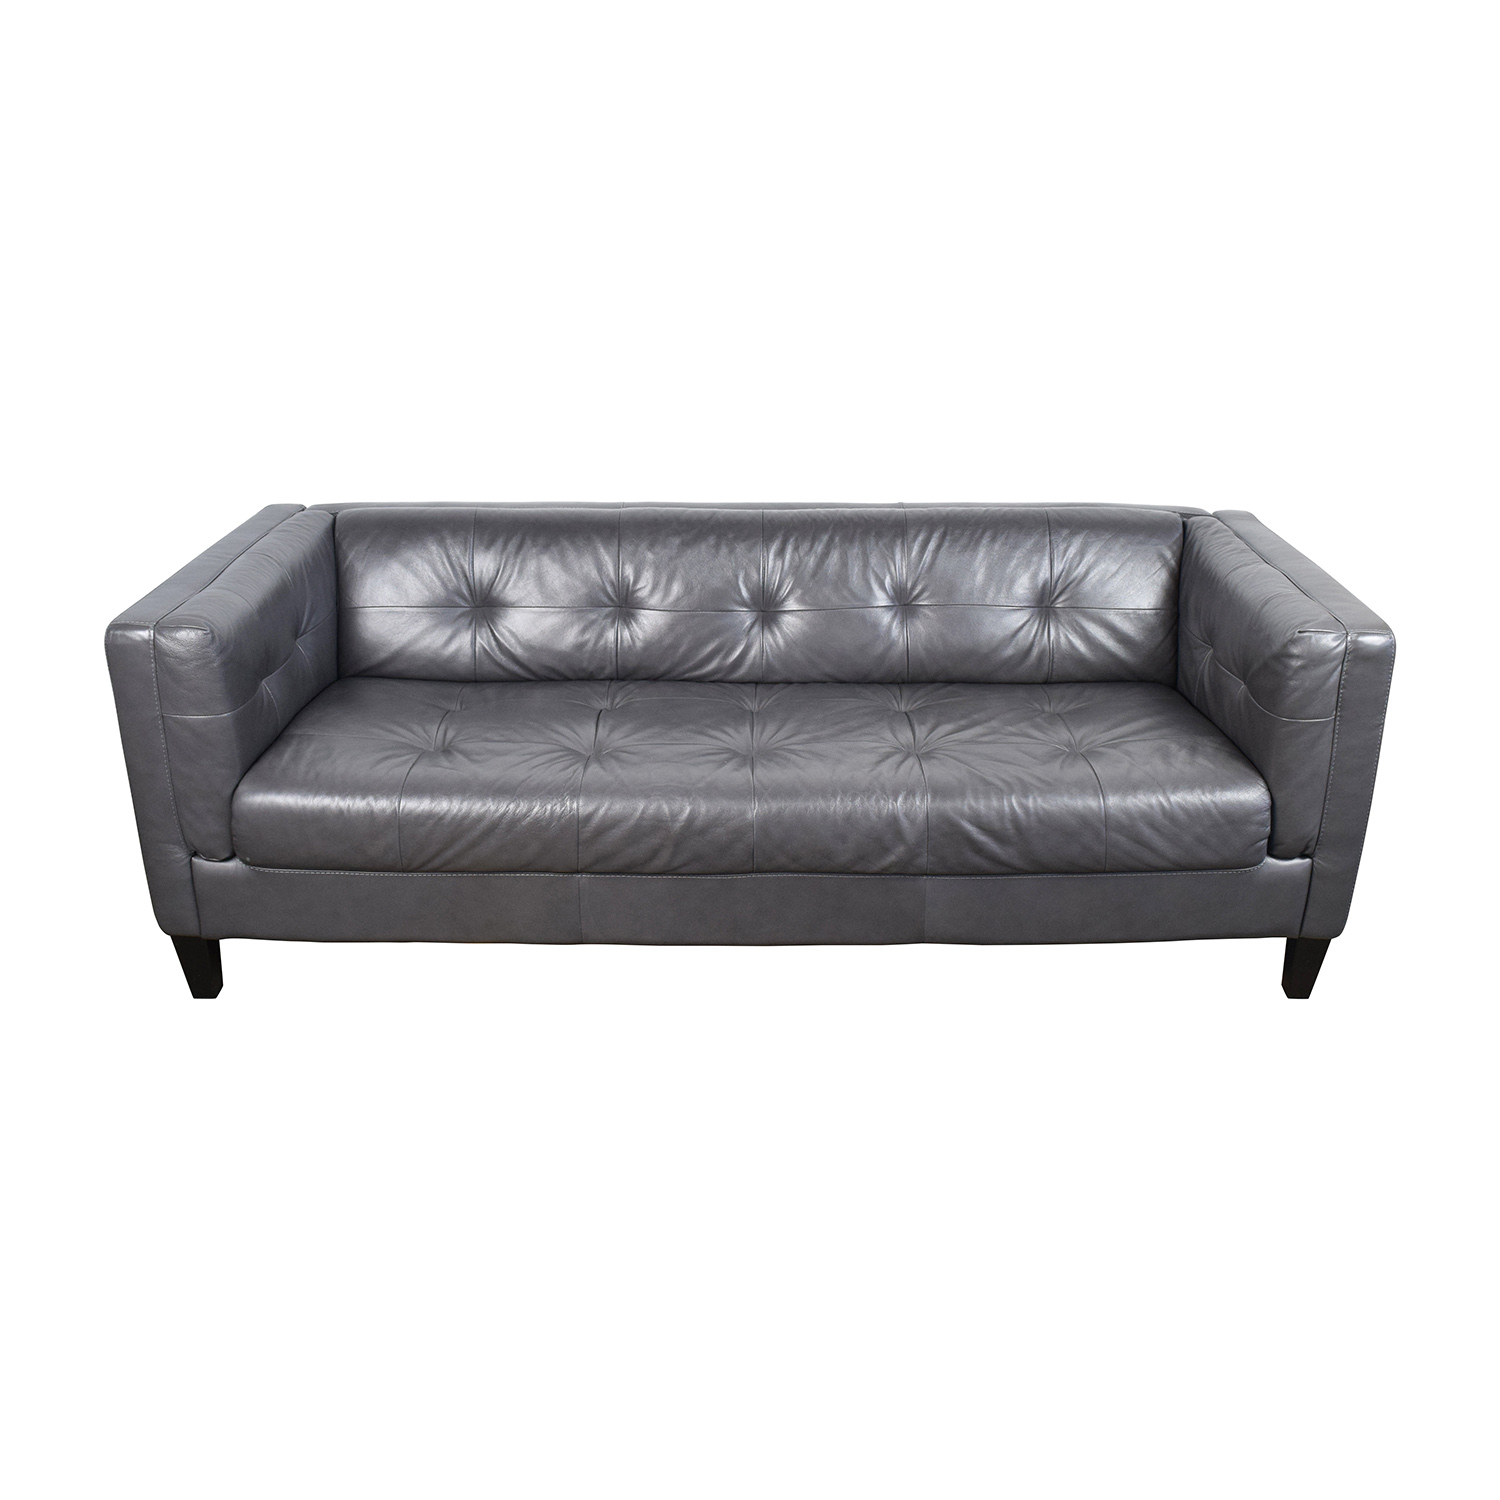 Used Tufted Sofa 47 Off Macy S Lizbeth Gray On Tufted Sofa Sofas Thesofa